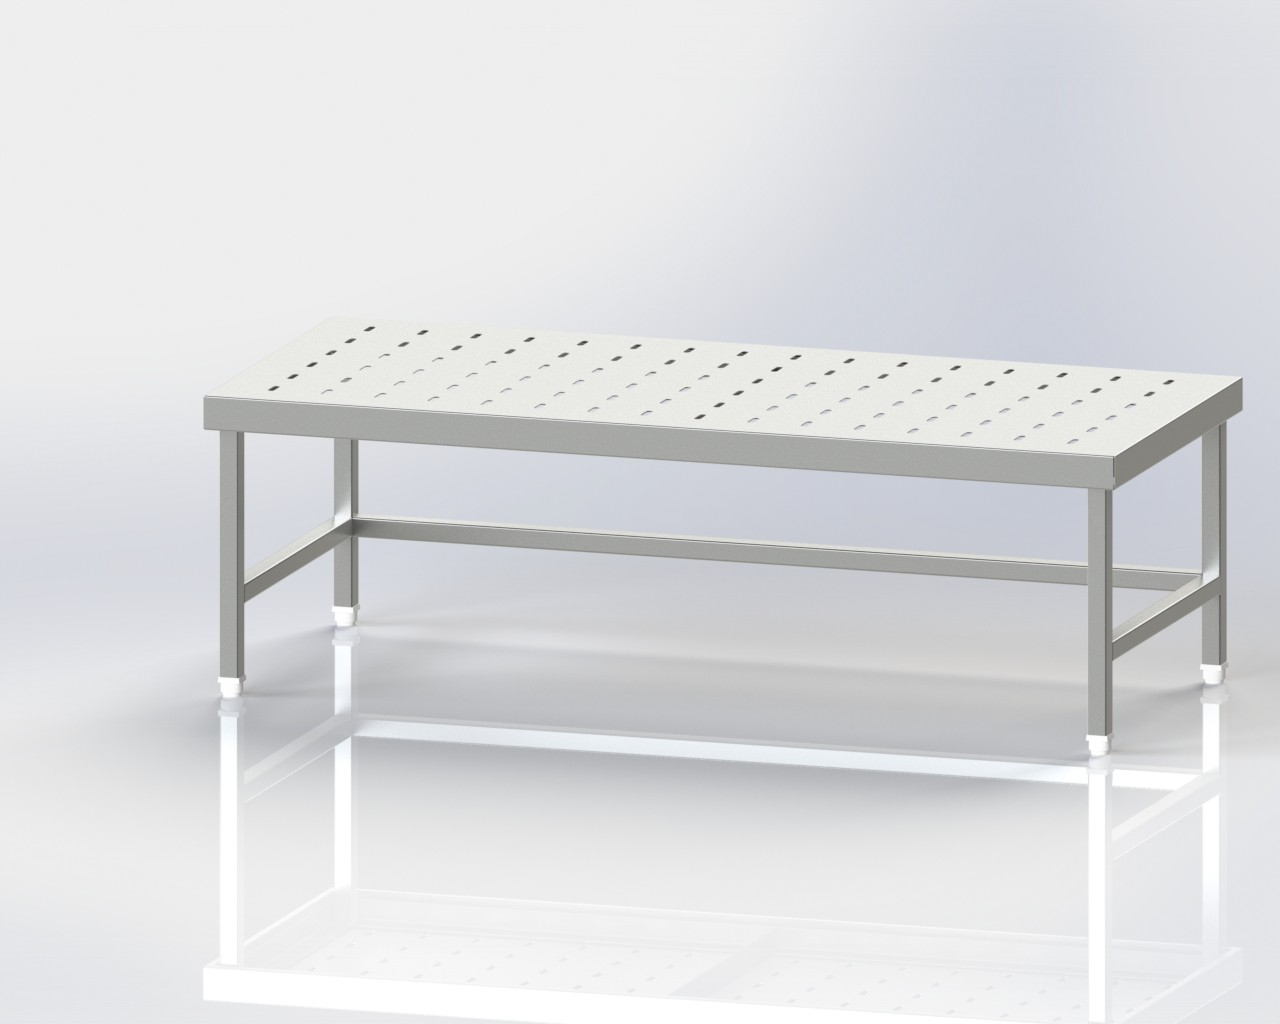 Dunnage Rack/ Perforated